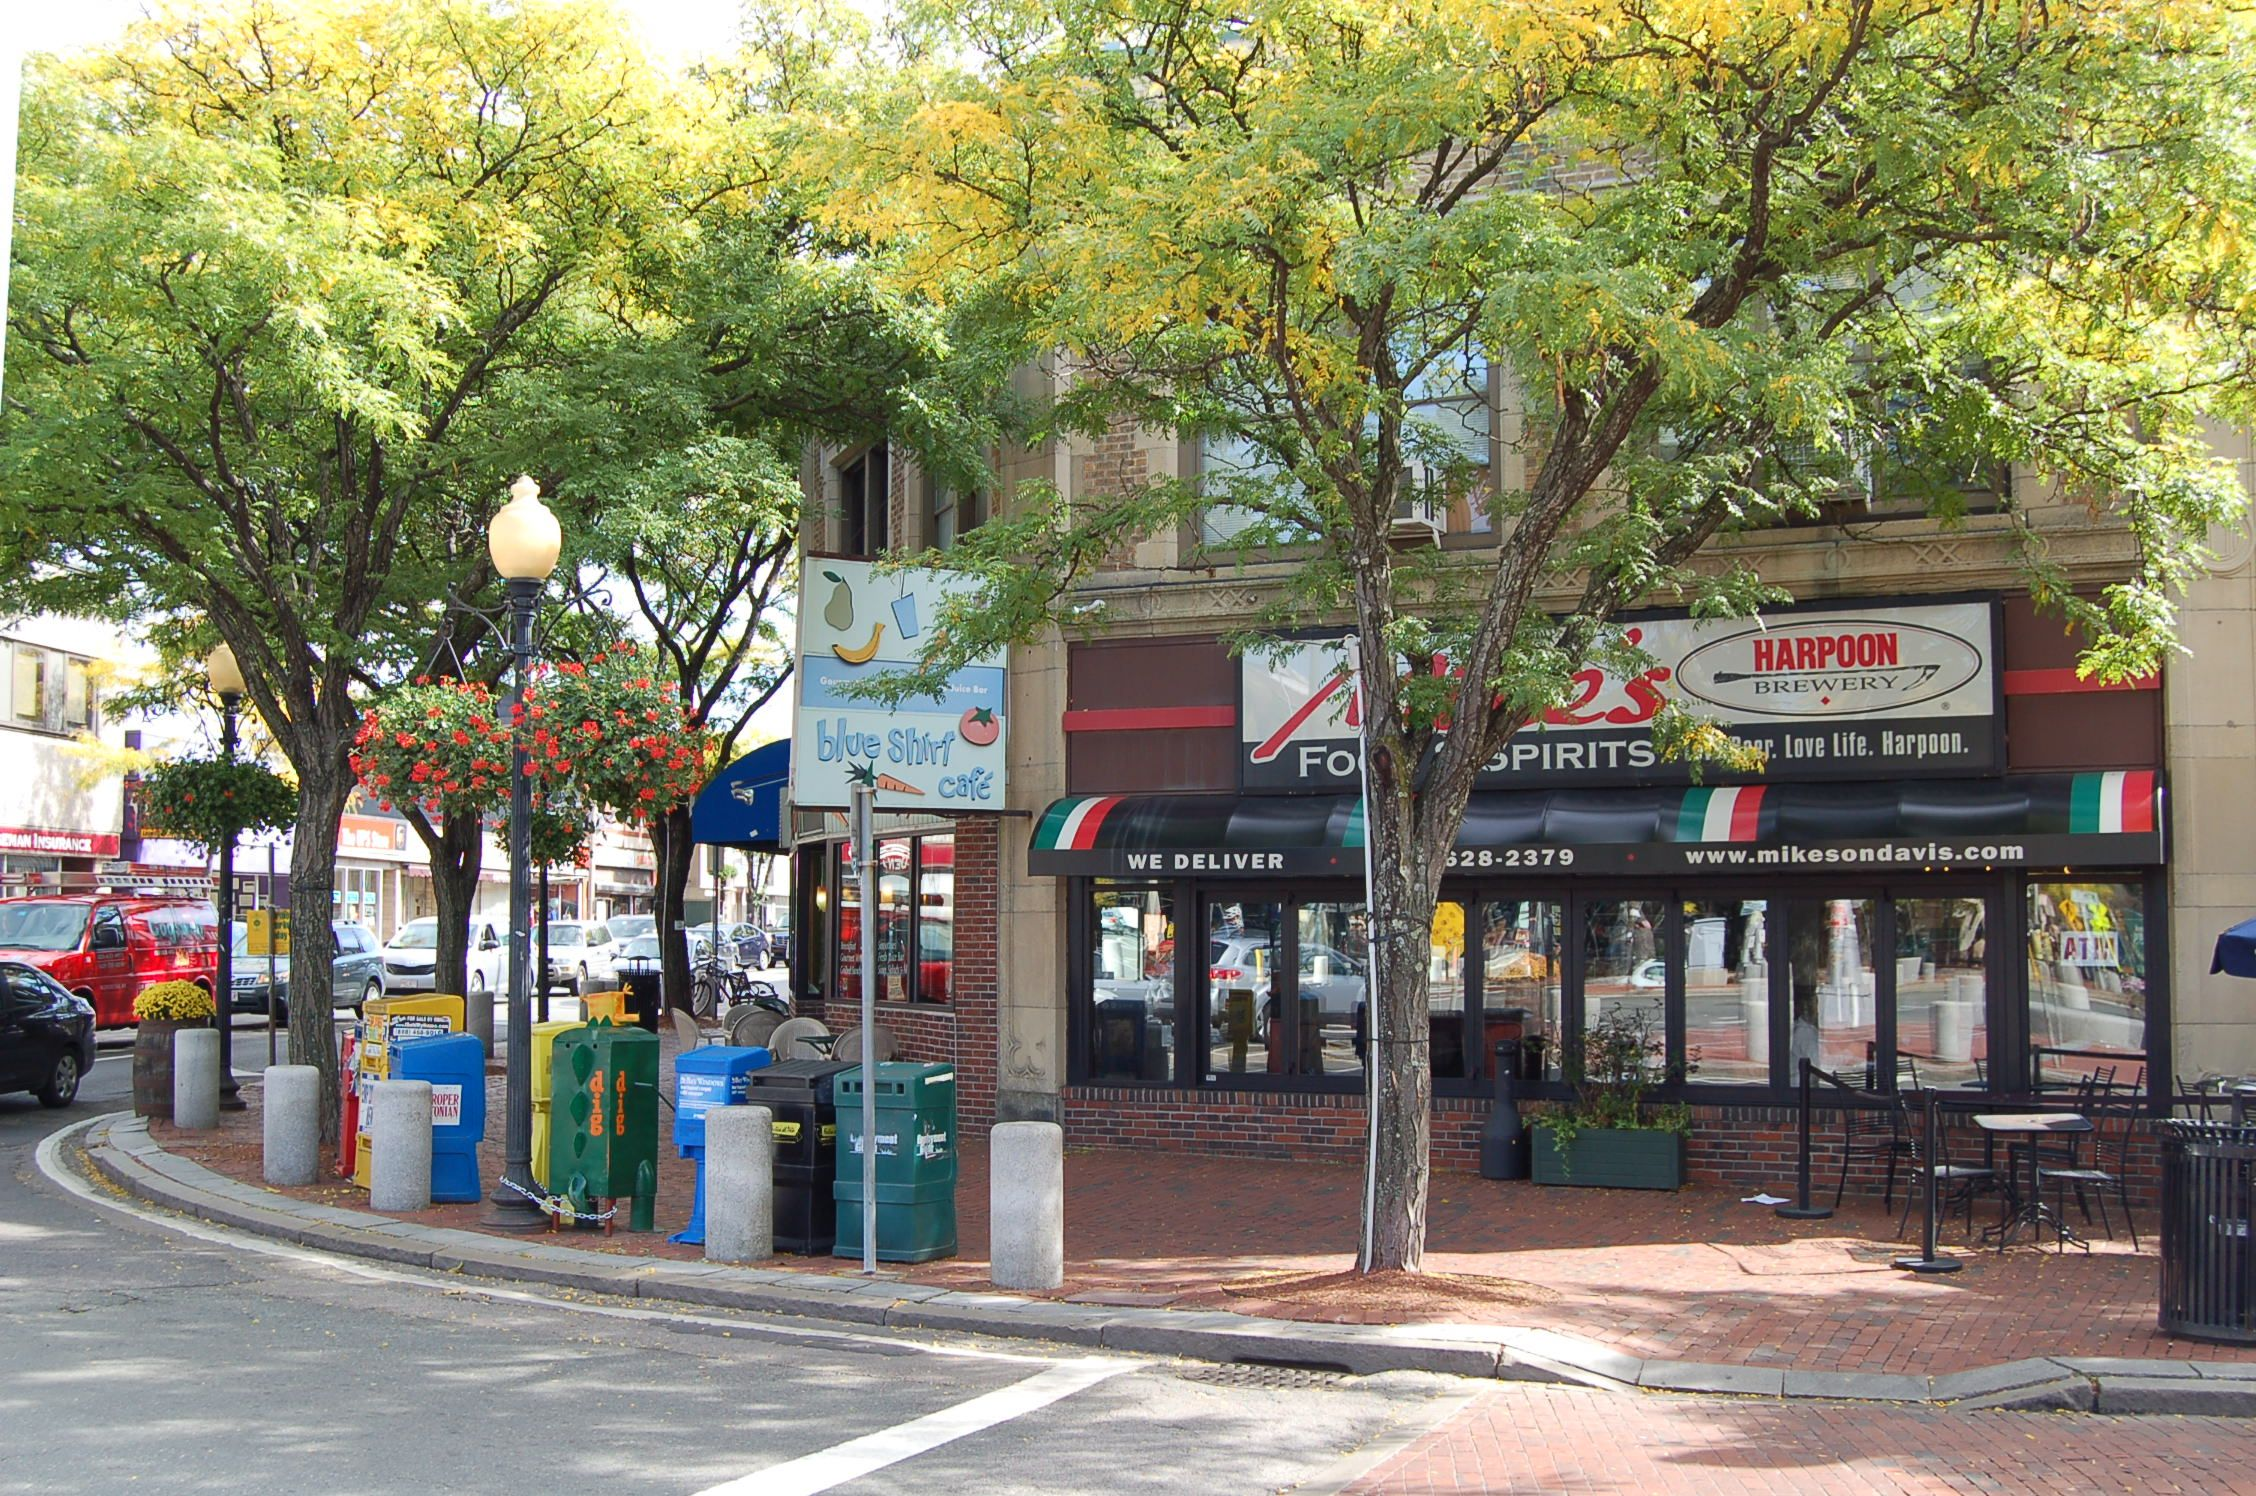 Davis Square, Somerville MA is the home to many restaurants